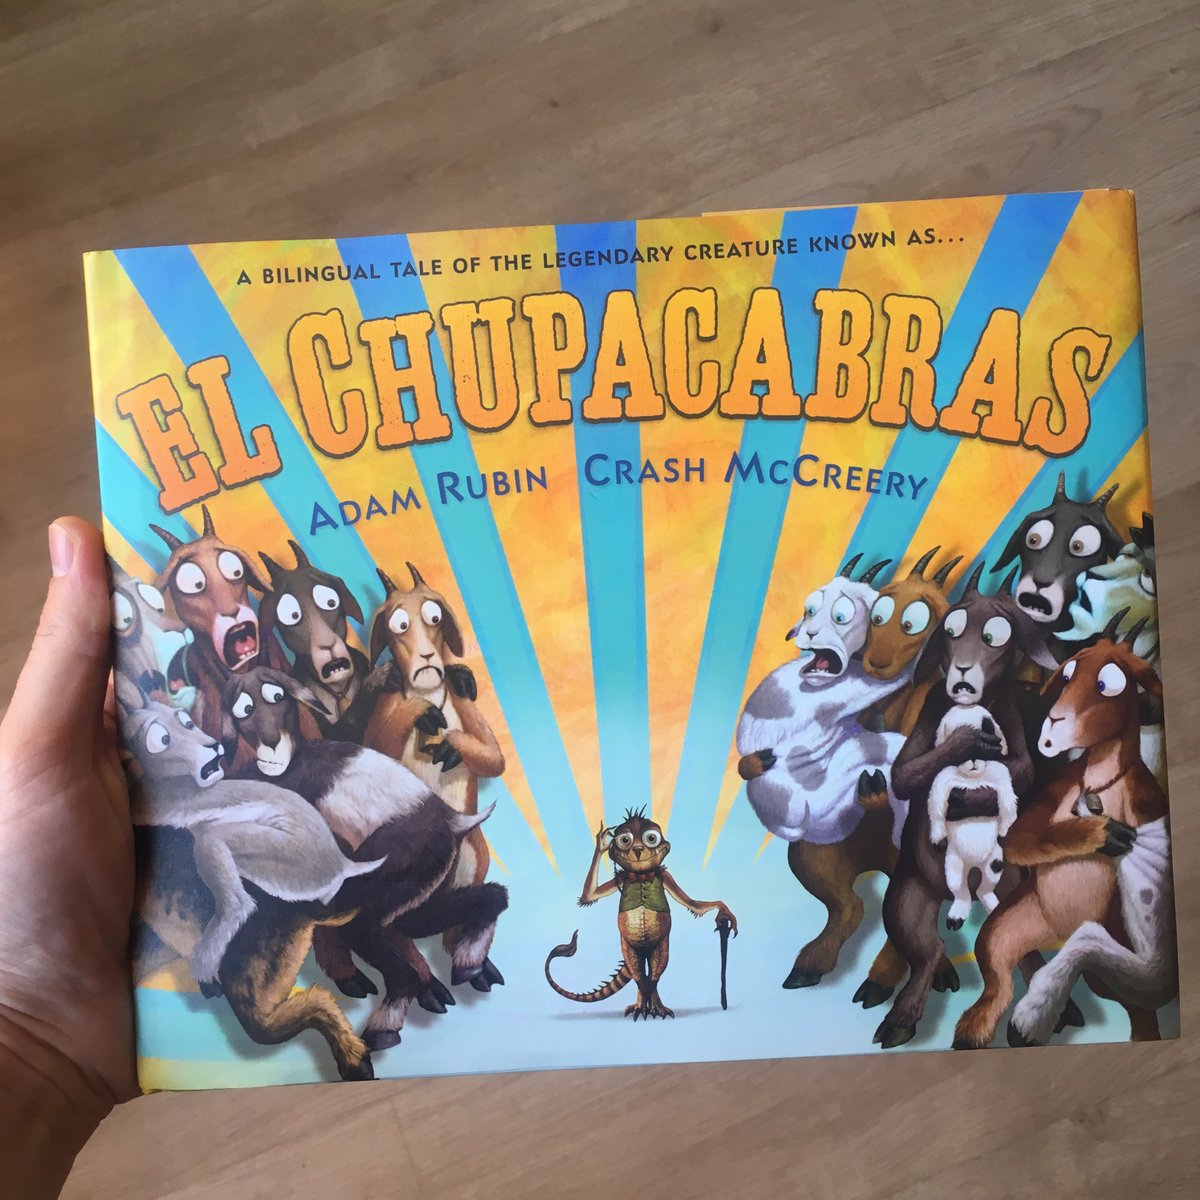 My bilingual book _El Chupacabras_ was nominated for a 2019 Texas Bluebonnet Award! ¡Que honor! Only 20 books are nominated and student votes determine the winner next year. Thank you @TBABooks and @TXLA for organizing such an epic state-wide reading initiative.